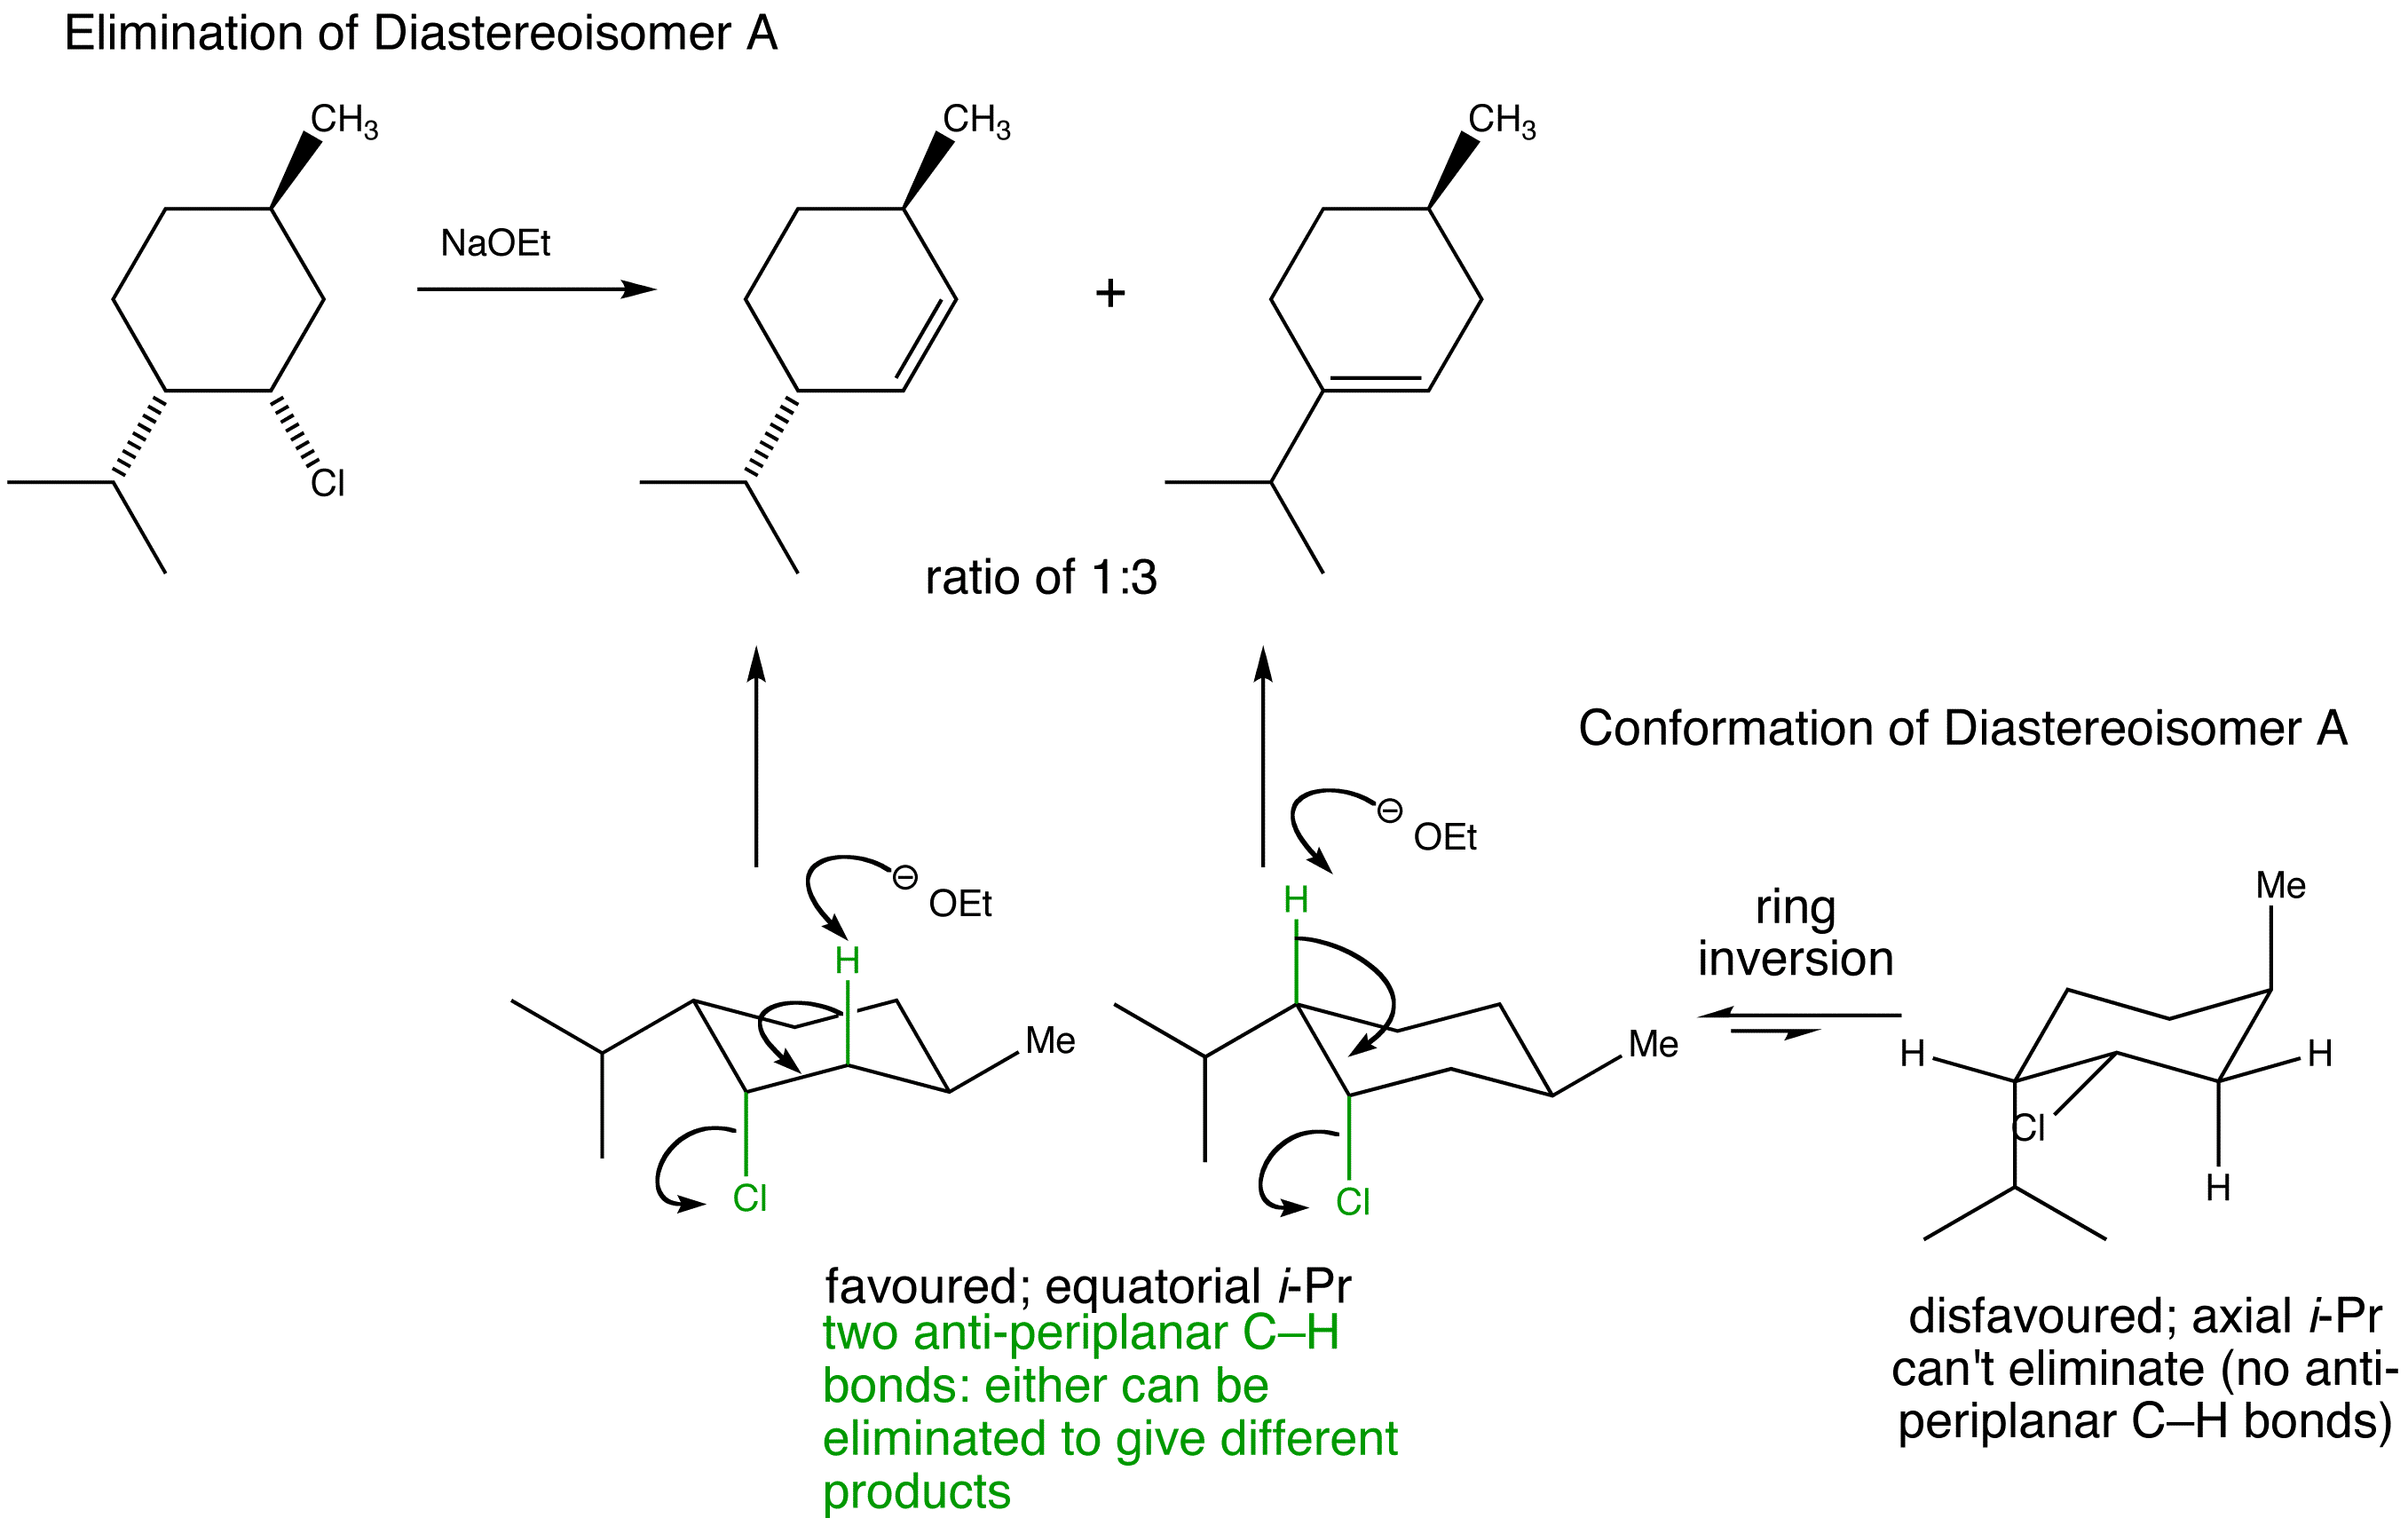 how to tell if e1 or e2 reaction